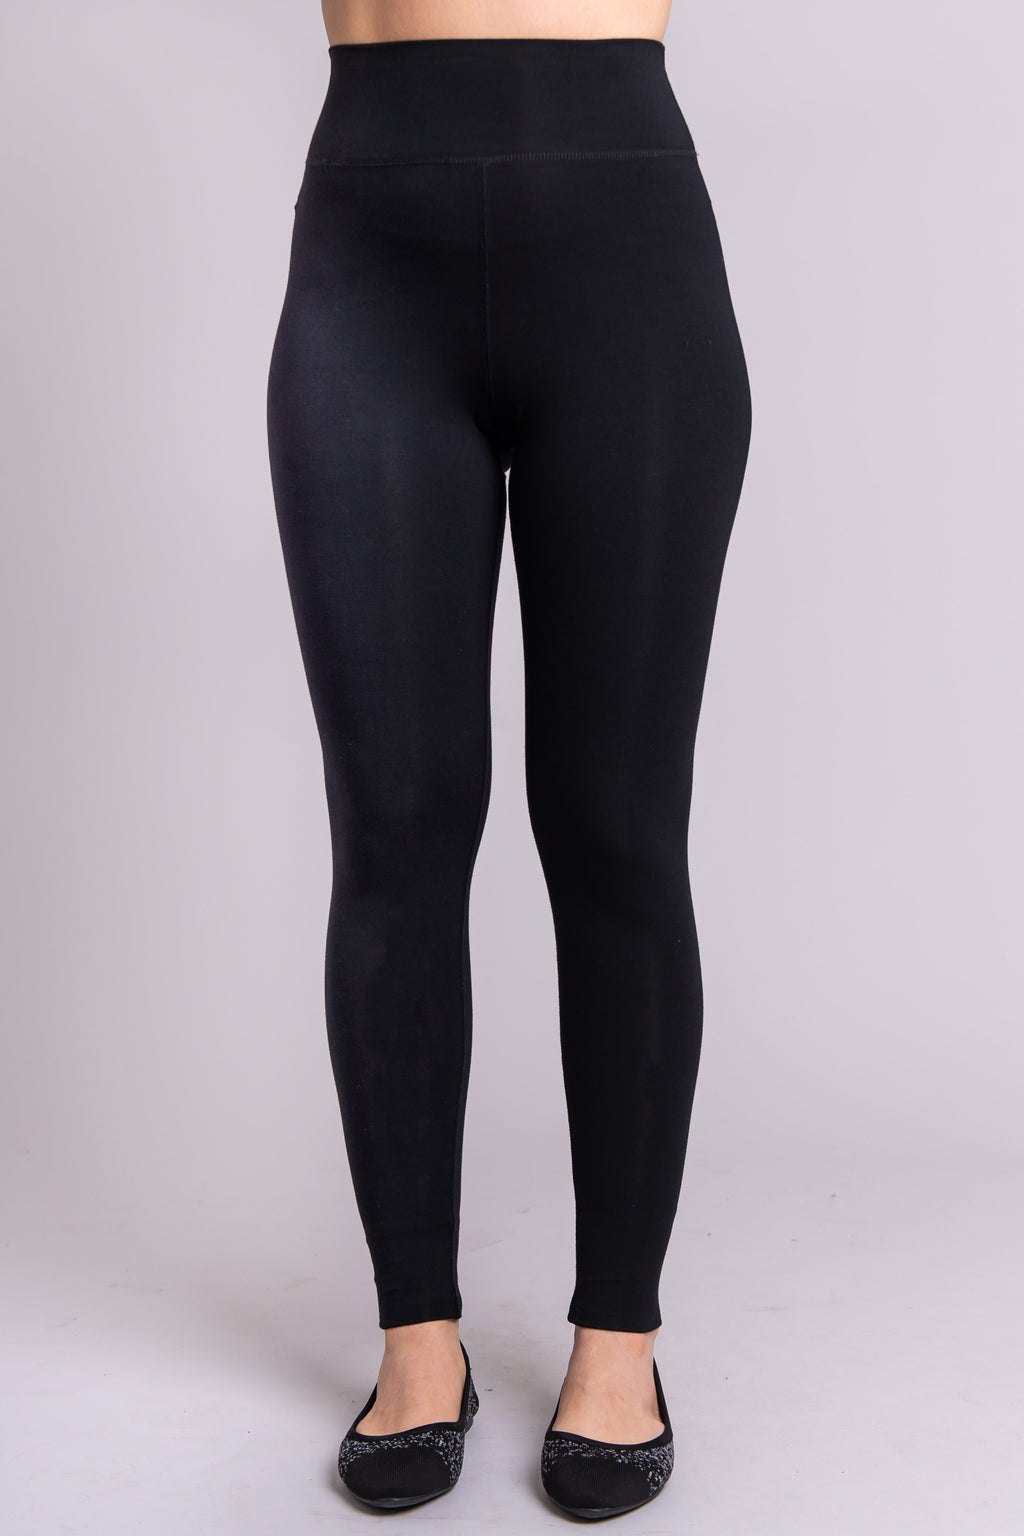 Riley Legging, Black, Bamboo Cotton - Blue Sky Clothing Co